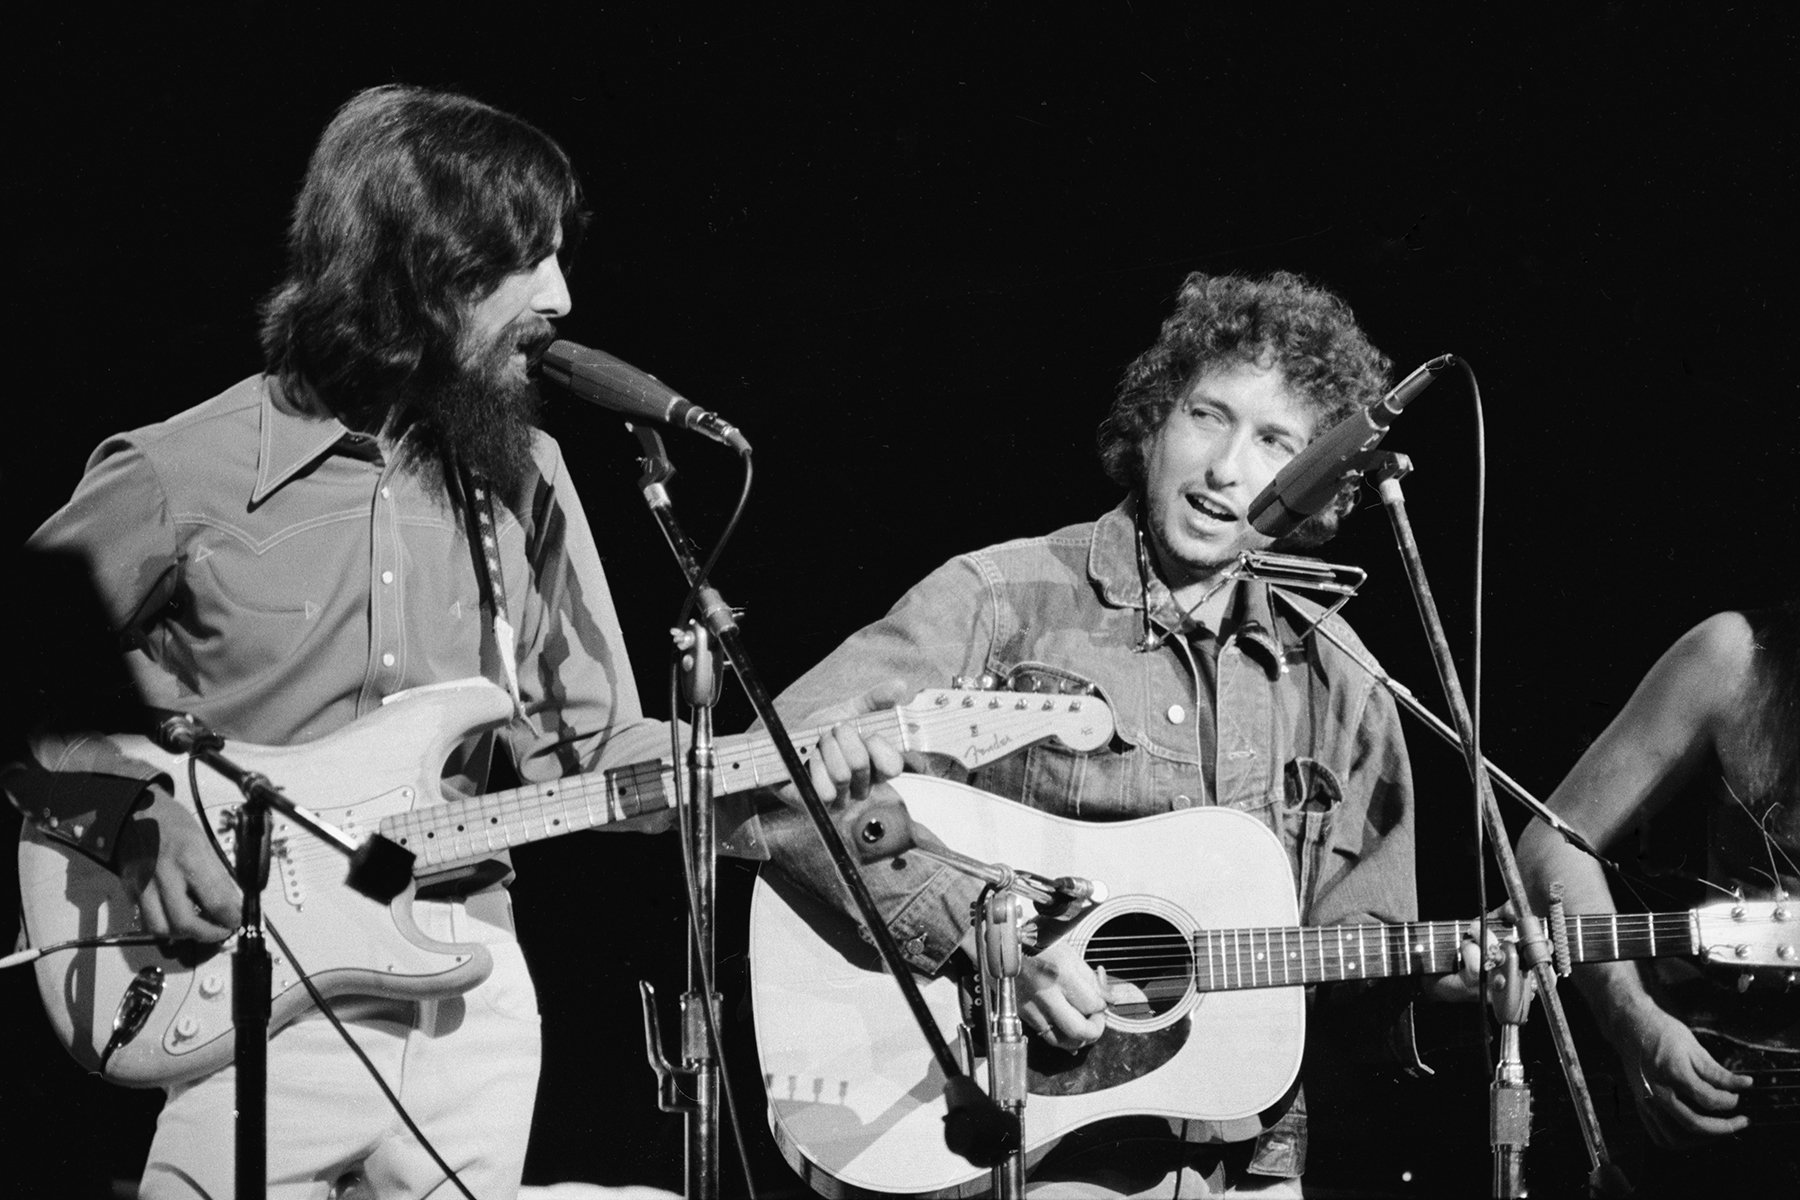 Flashback: Bob Dylan Sings an Impromptu 'Yesterday' With George Harrison in 1970